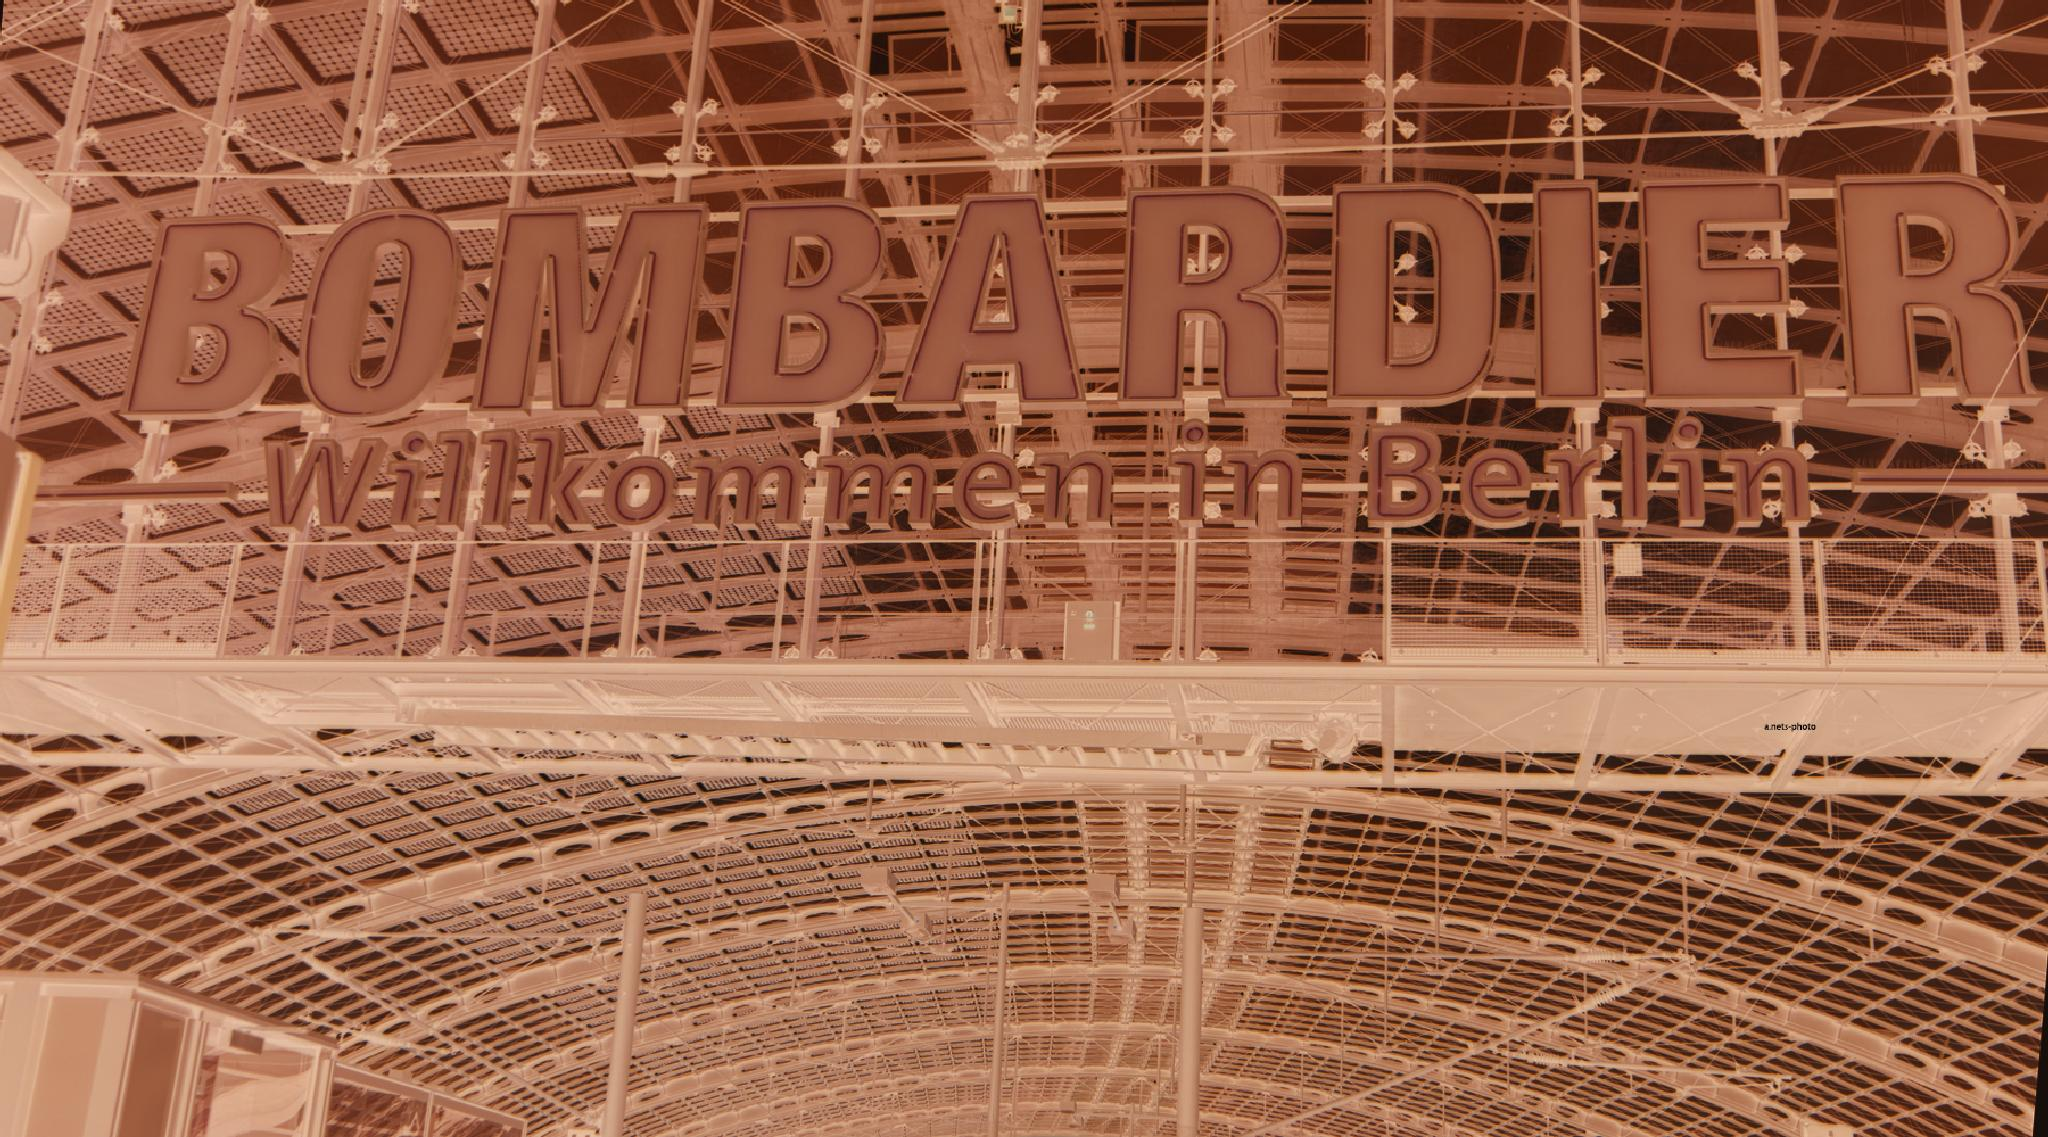 Berlin central station by anetsphoto